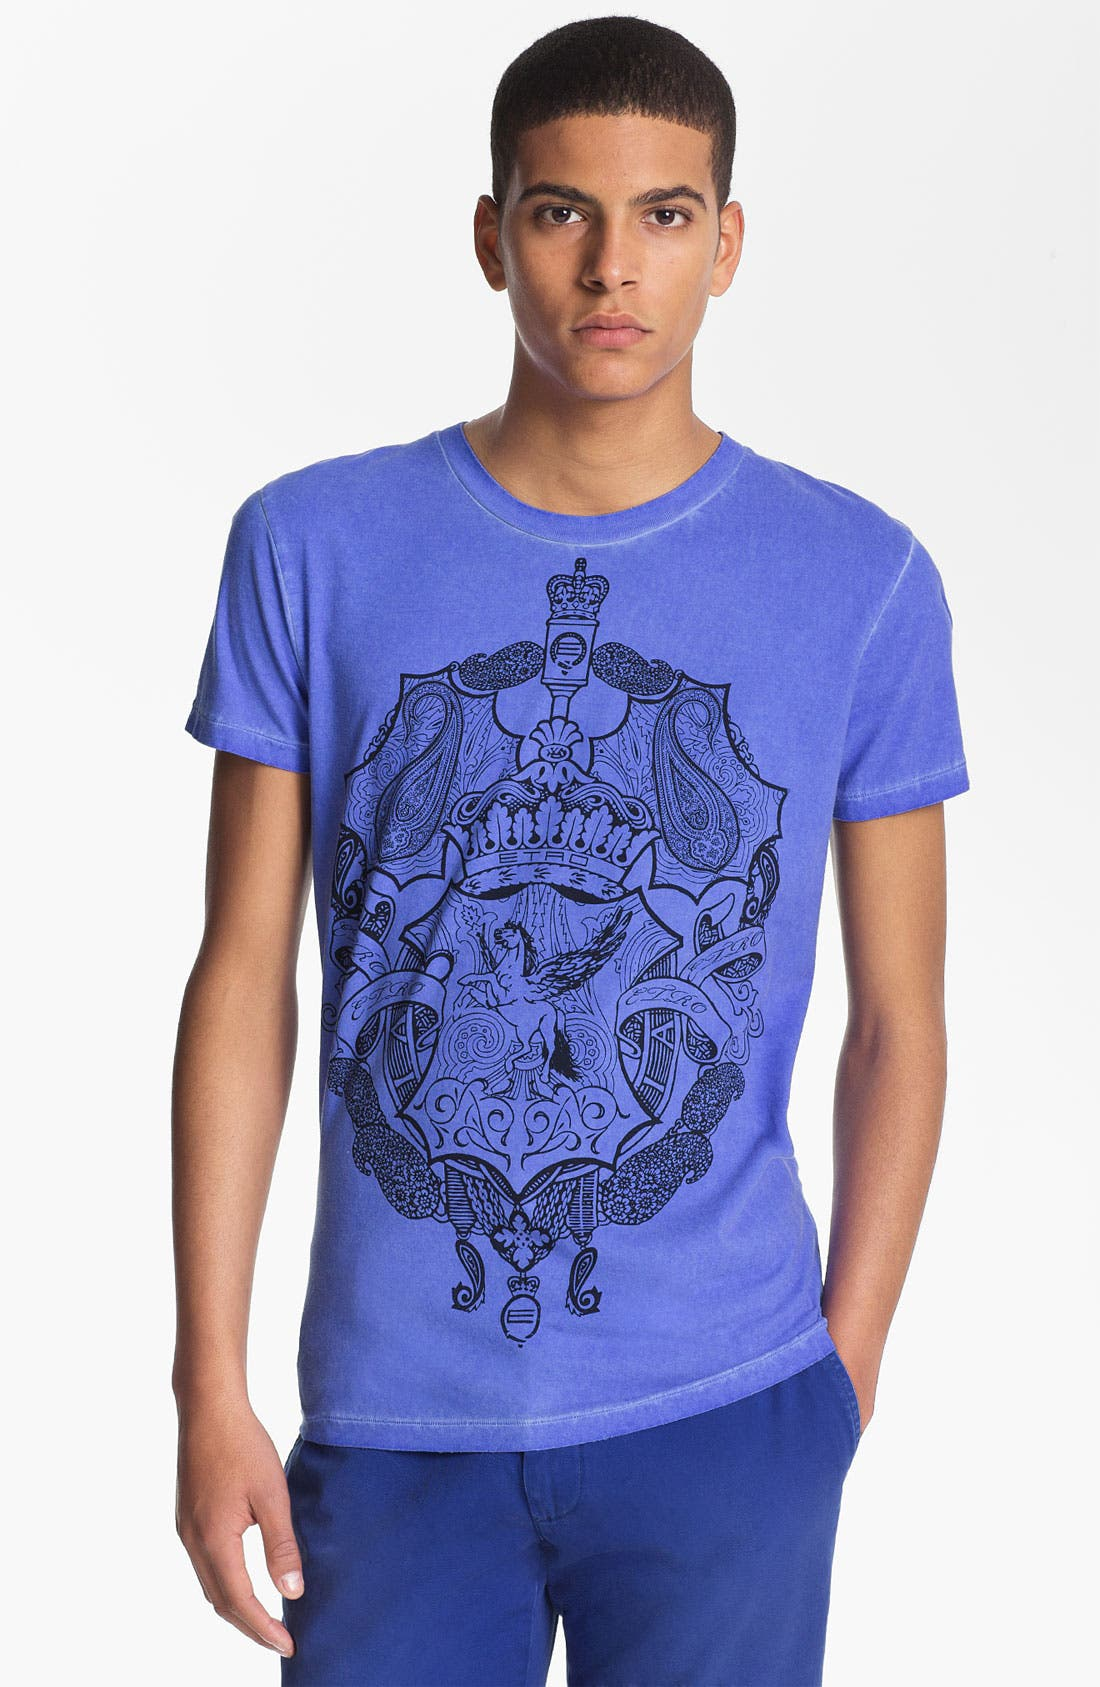 Alternate Image 1 Selected - Etro 'Stampata' Graphic T-Shirt